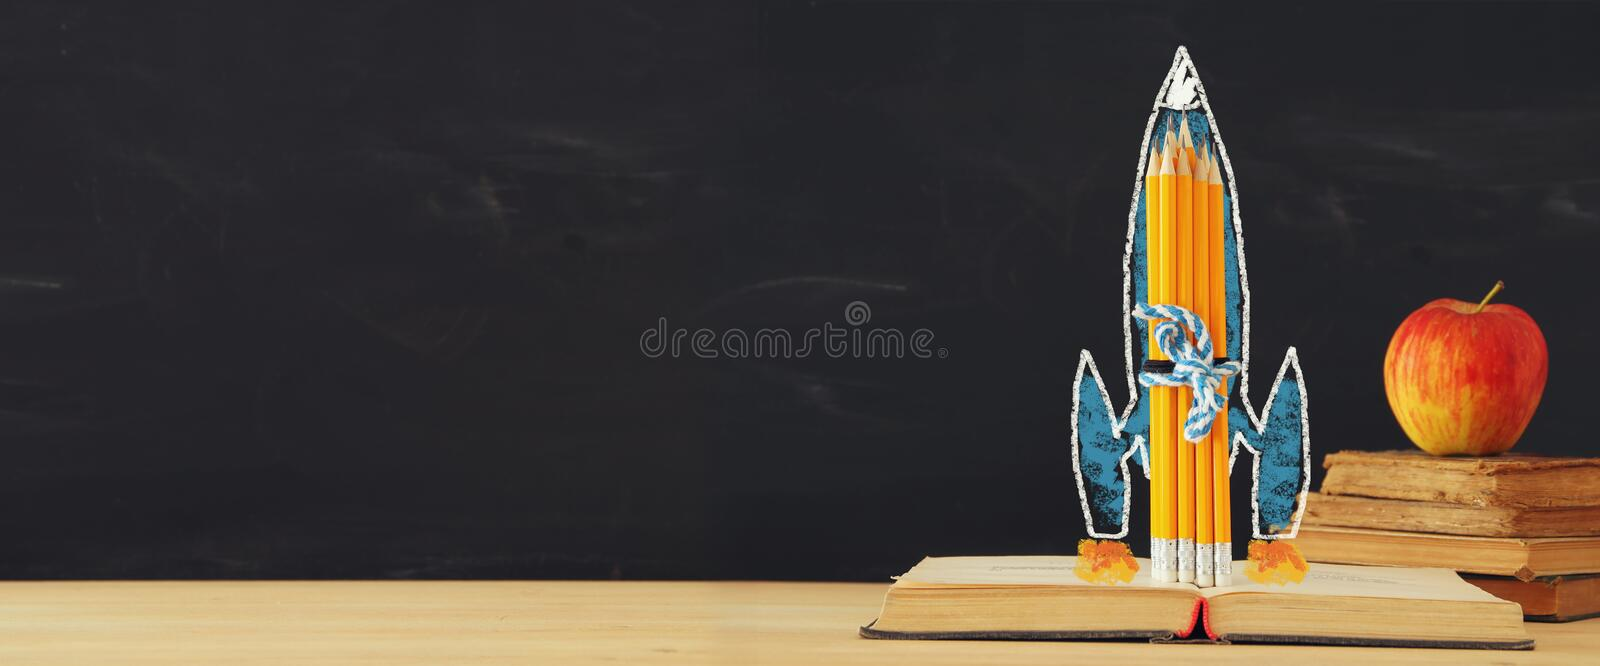 Back to school banner. rocket sketch and pencils over open book in front of classroom blackboard. royalty free stock images